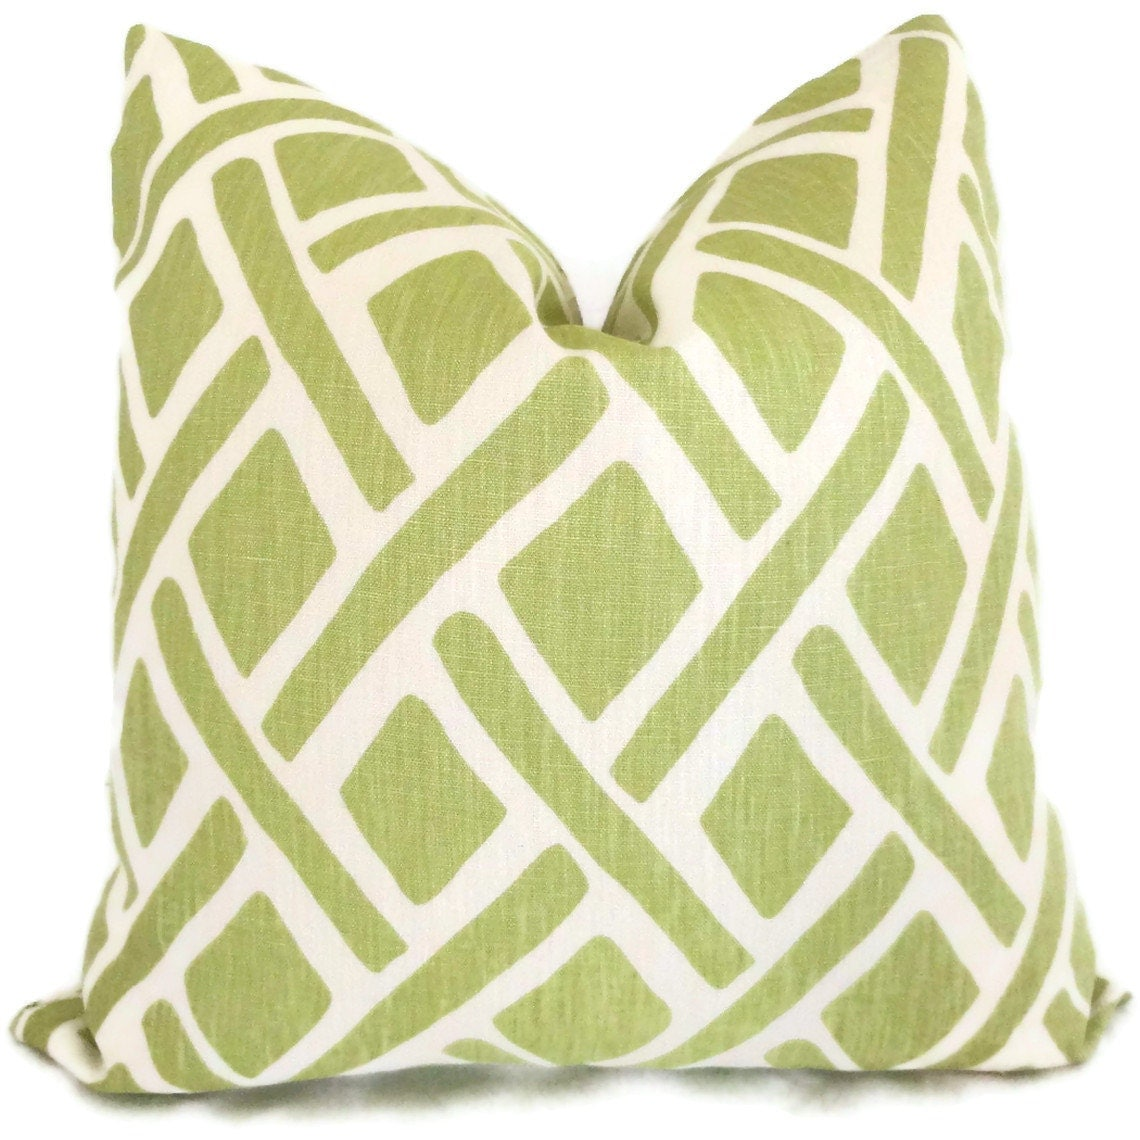 Kravet Green Trellis Decorative Pillow Cover 18x18 20x20